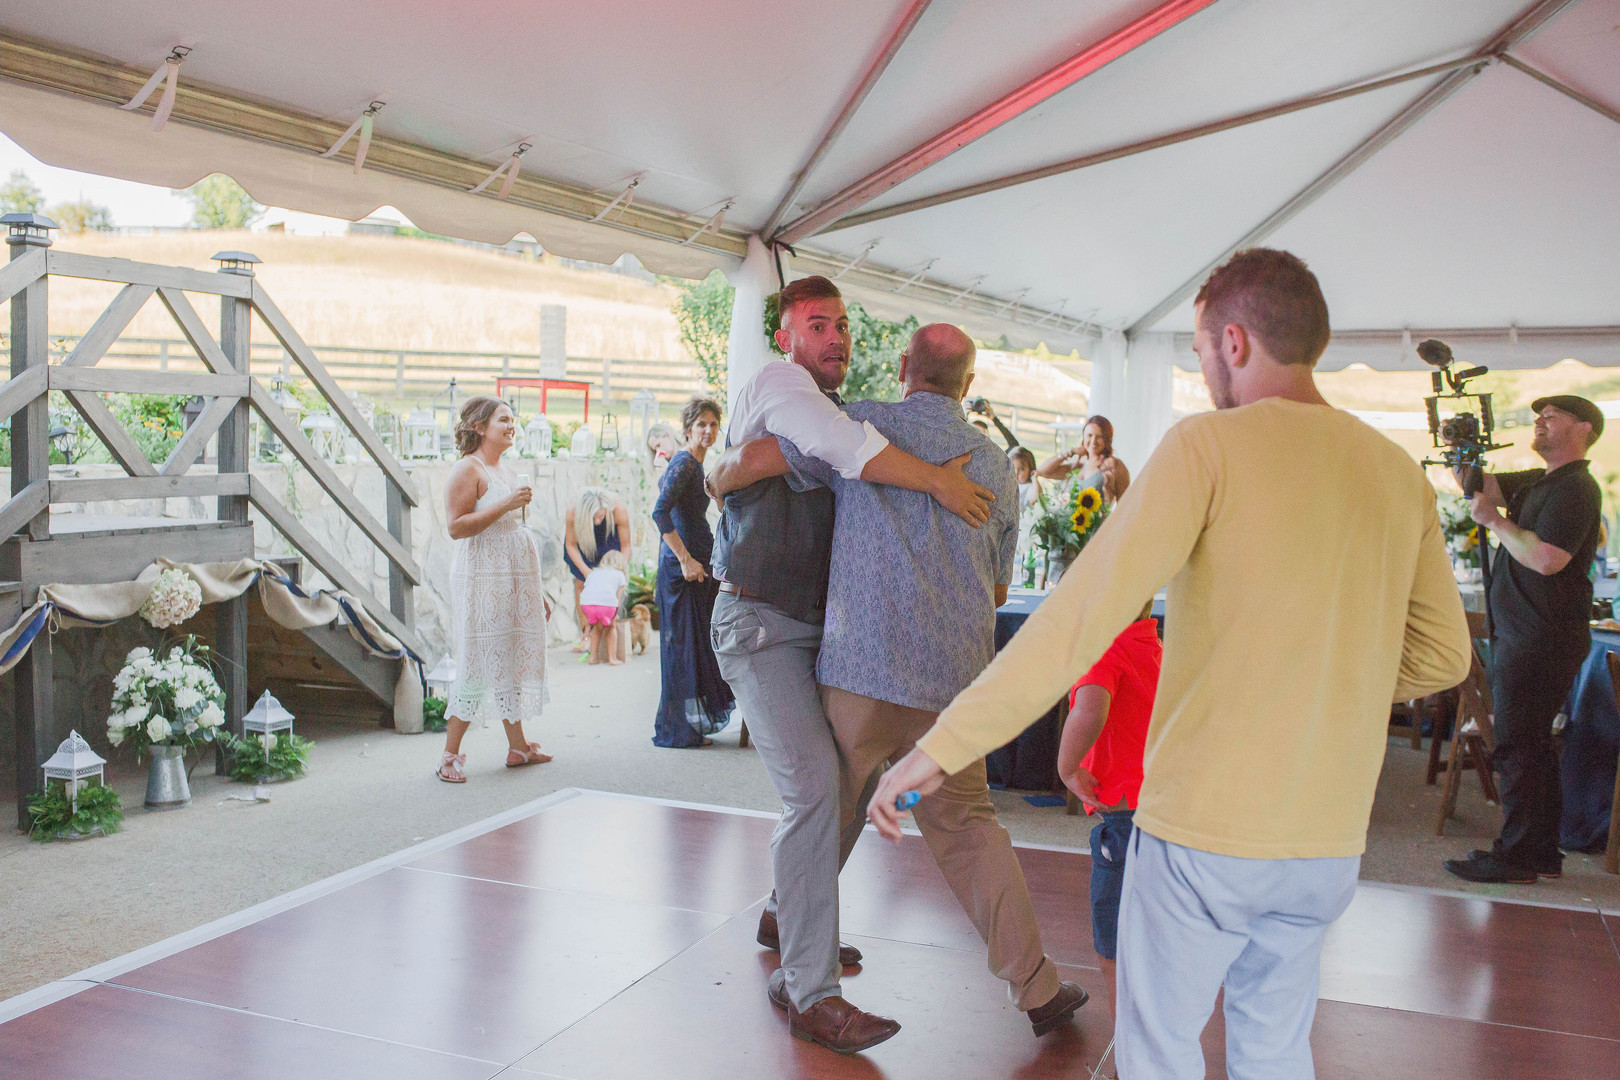 Groom & father-in-law dance